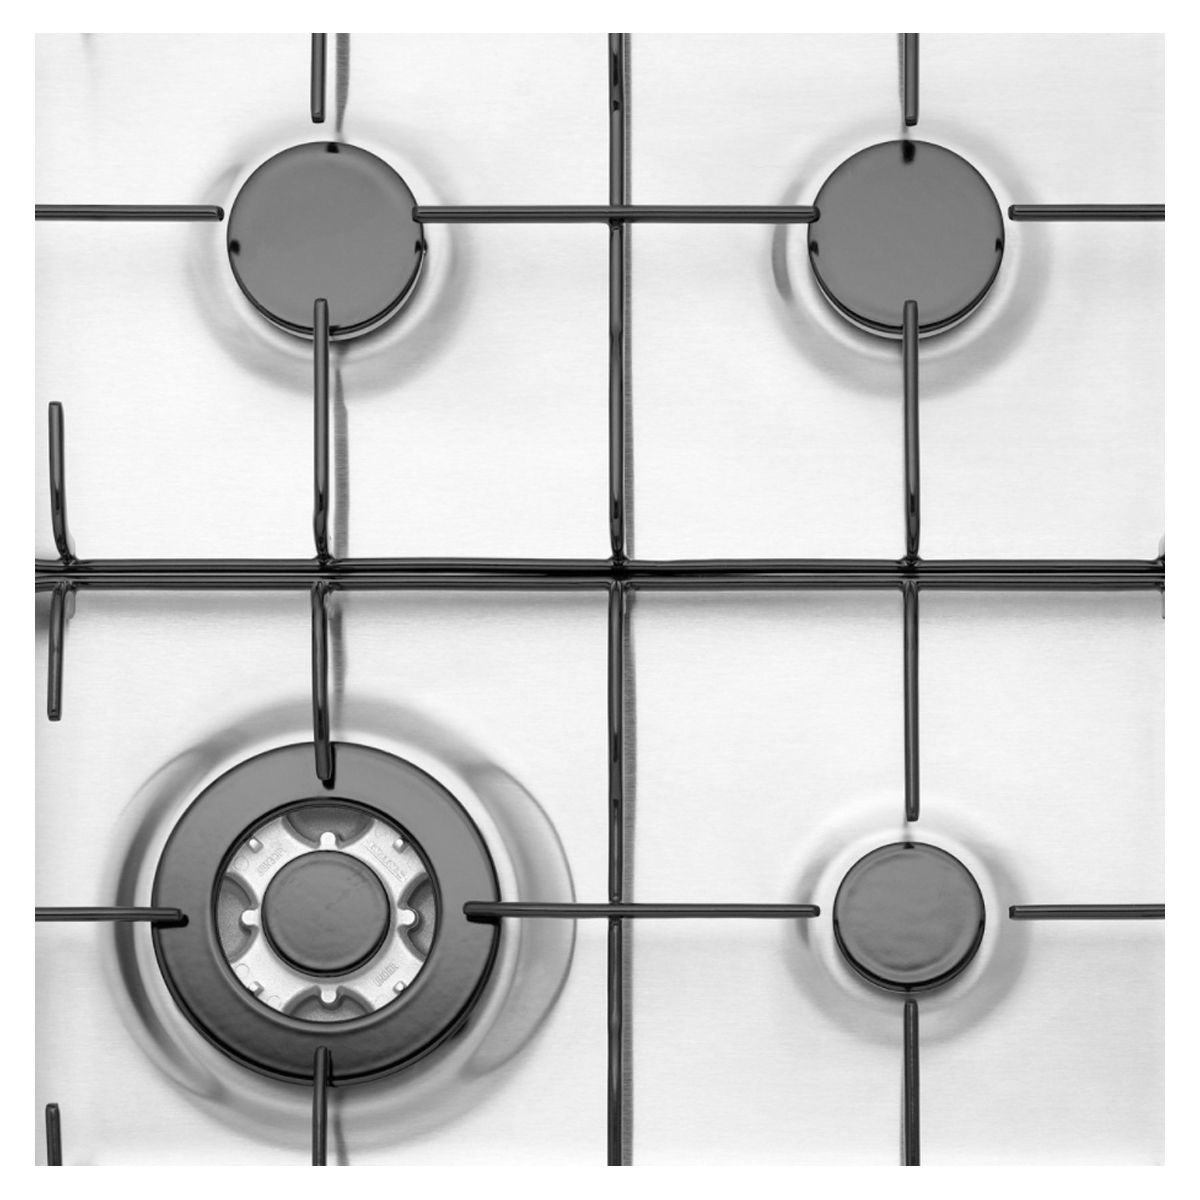 Chef GHC617S Gas Cooktop 145599